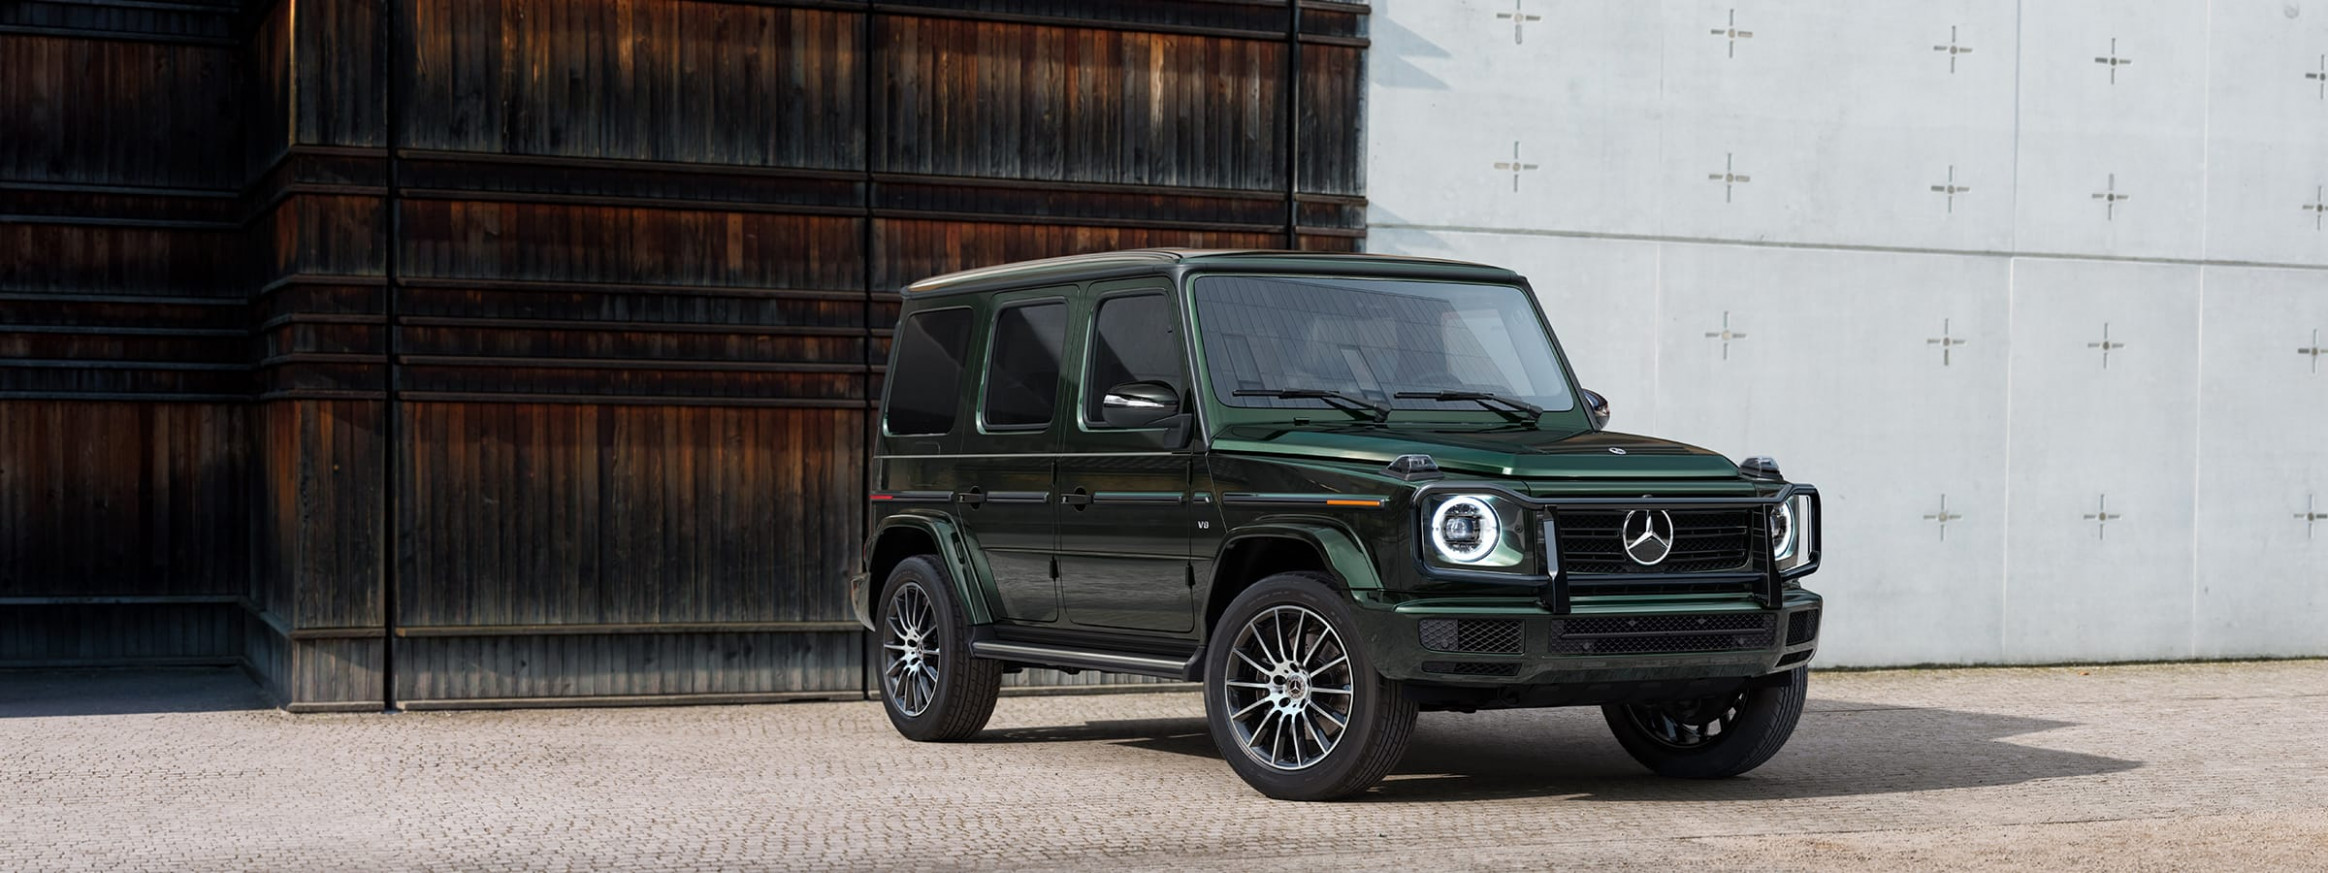 G-Class Luxury Off-Road SUV - mercedes off road 2020